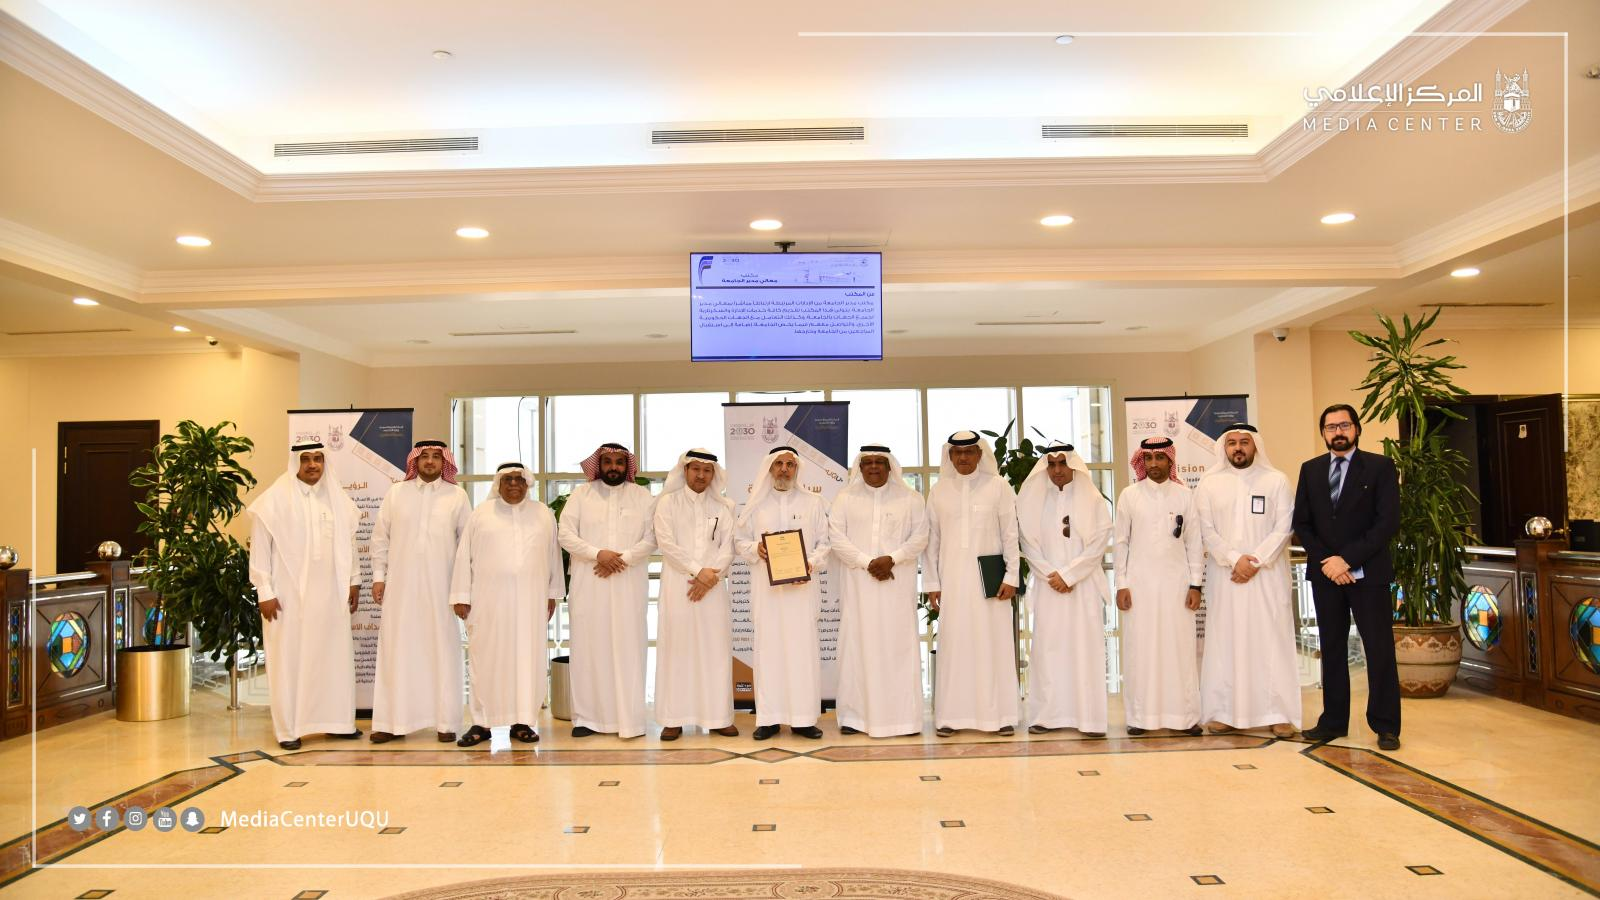 The UQU President Offers Congratulations on the Department of Islamic Architecture Obtaining International Academic Accreditation